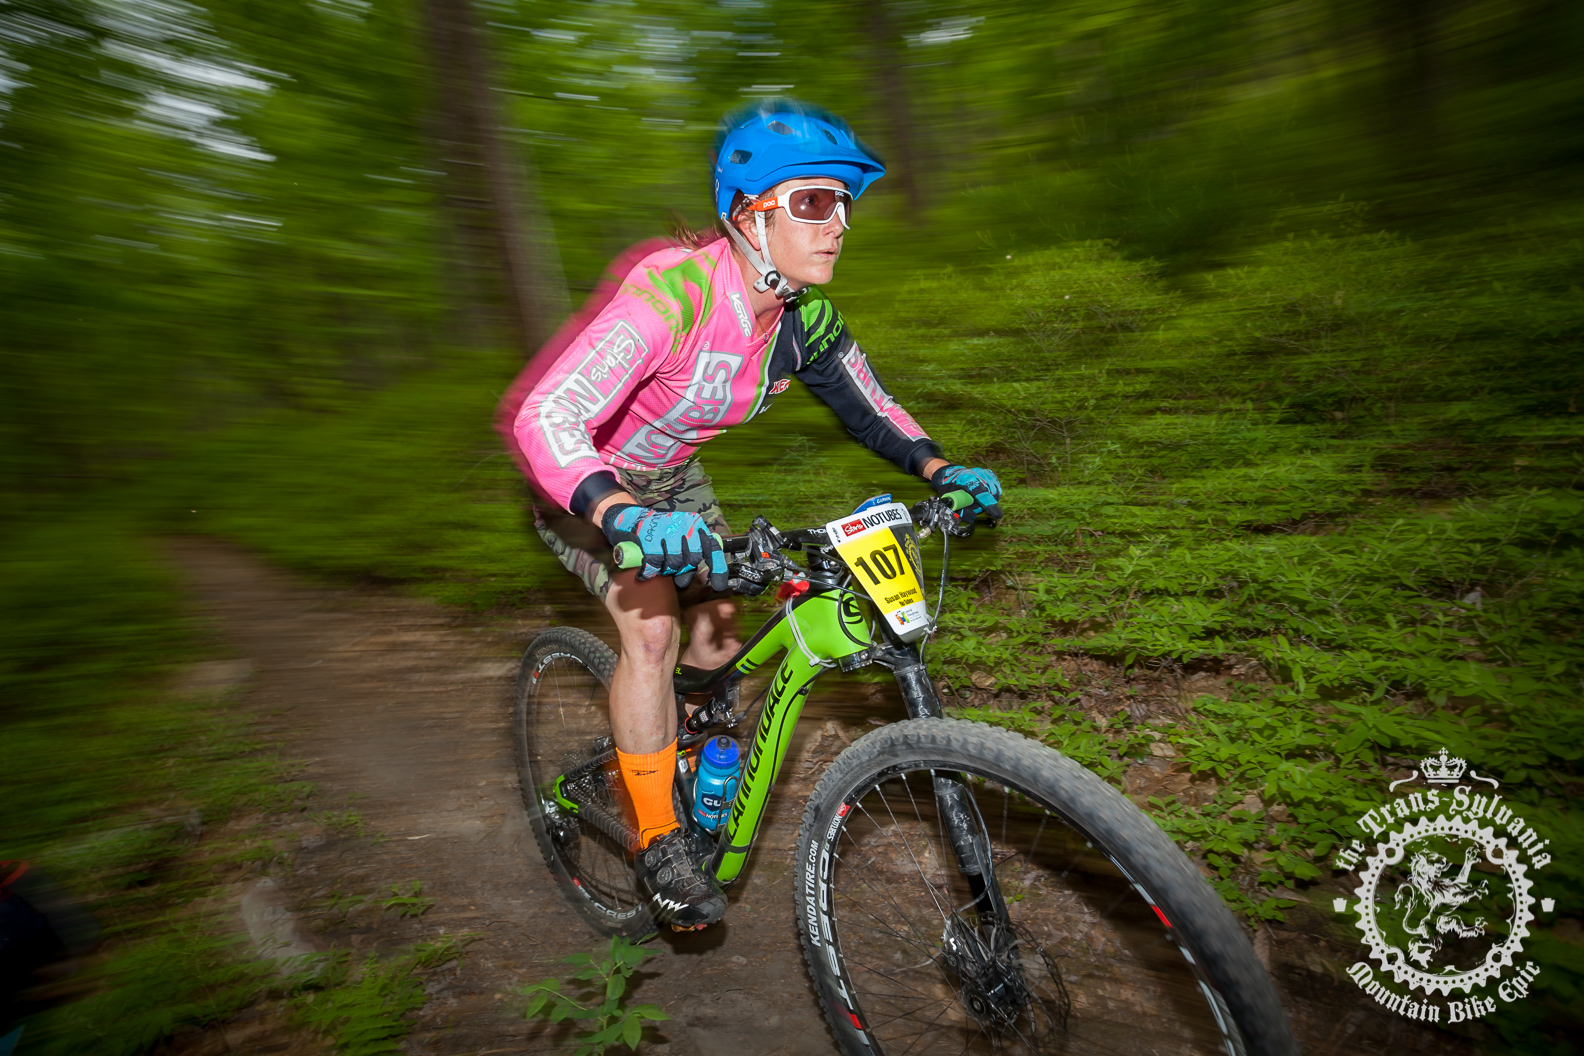 Lindine and Haywood win stage 3 at the NoTubes Trans-Sylvania Epic